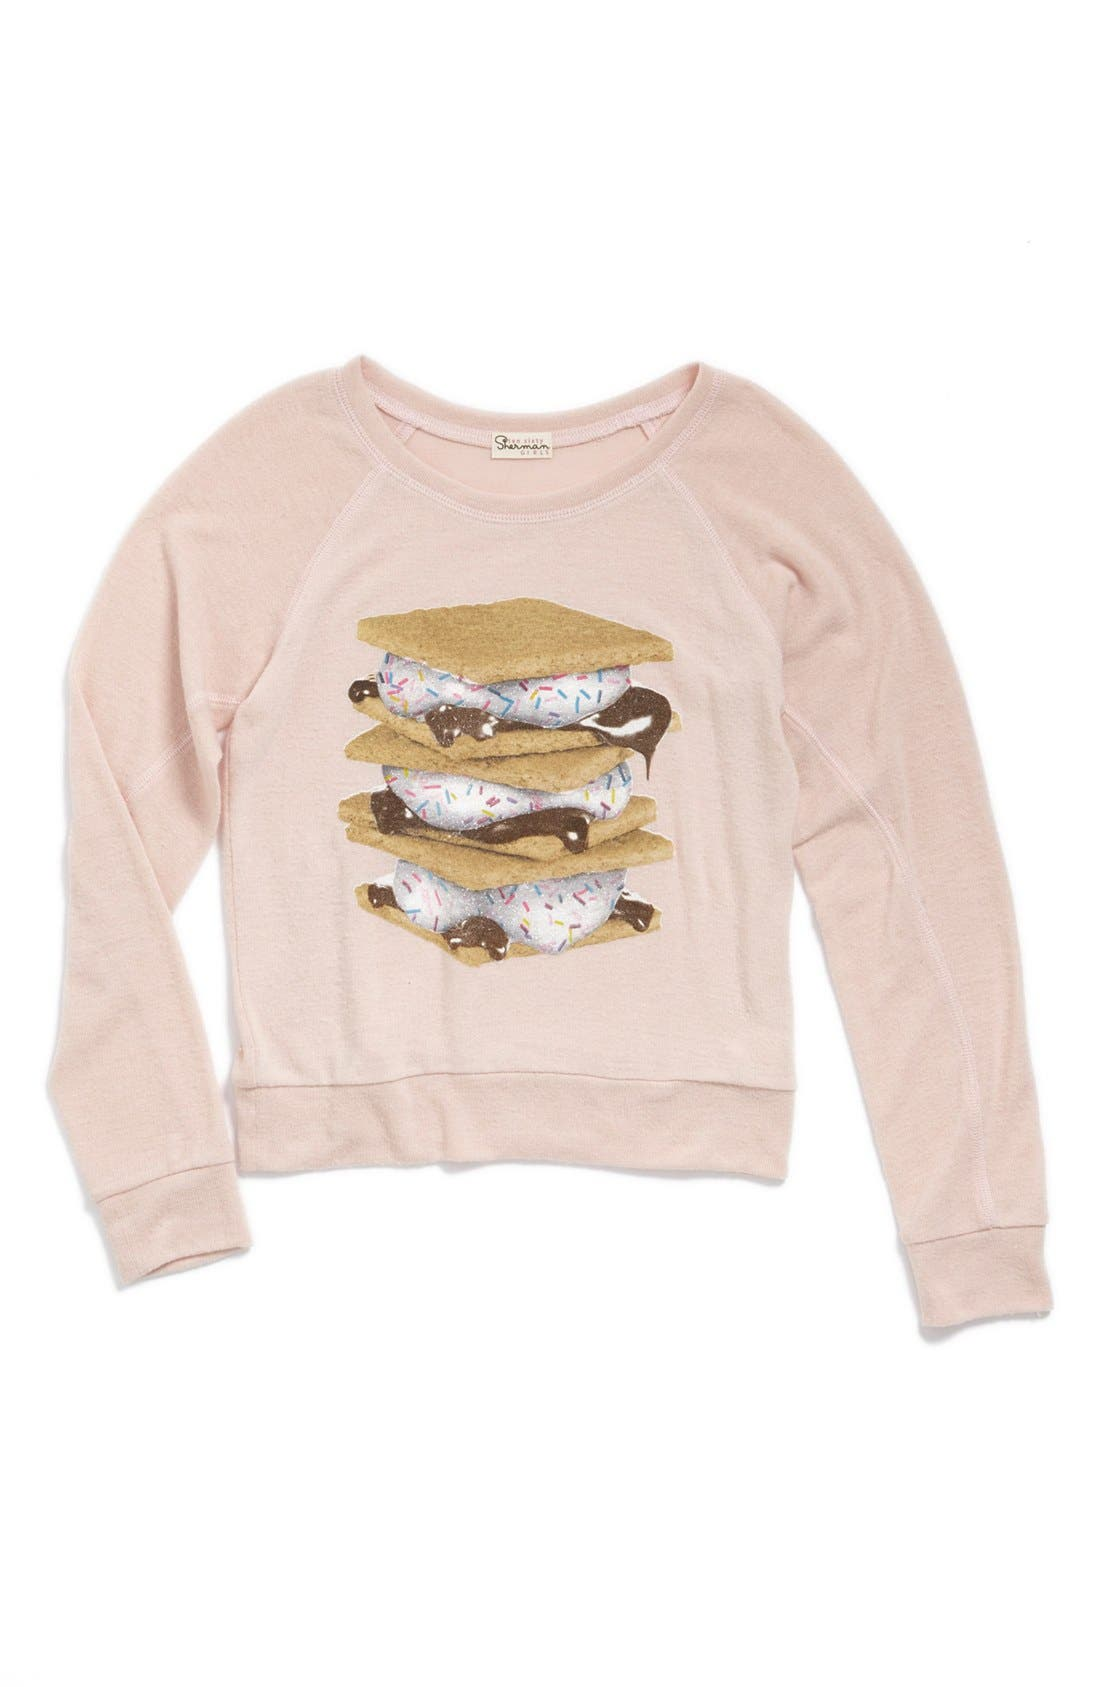 Main Image - Ten Sixty Sherman 'Foodie' Graphic Sweatshirt (Big Girls)